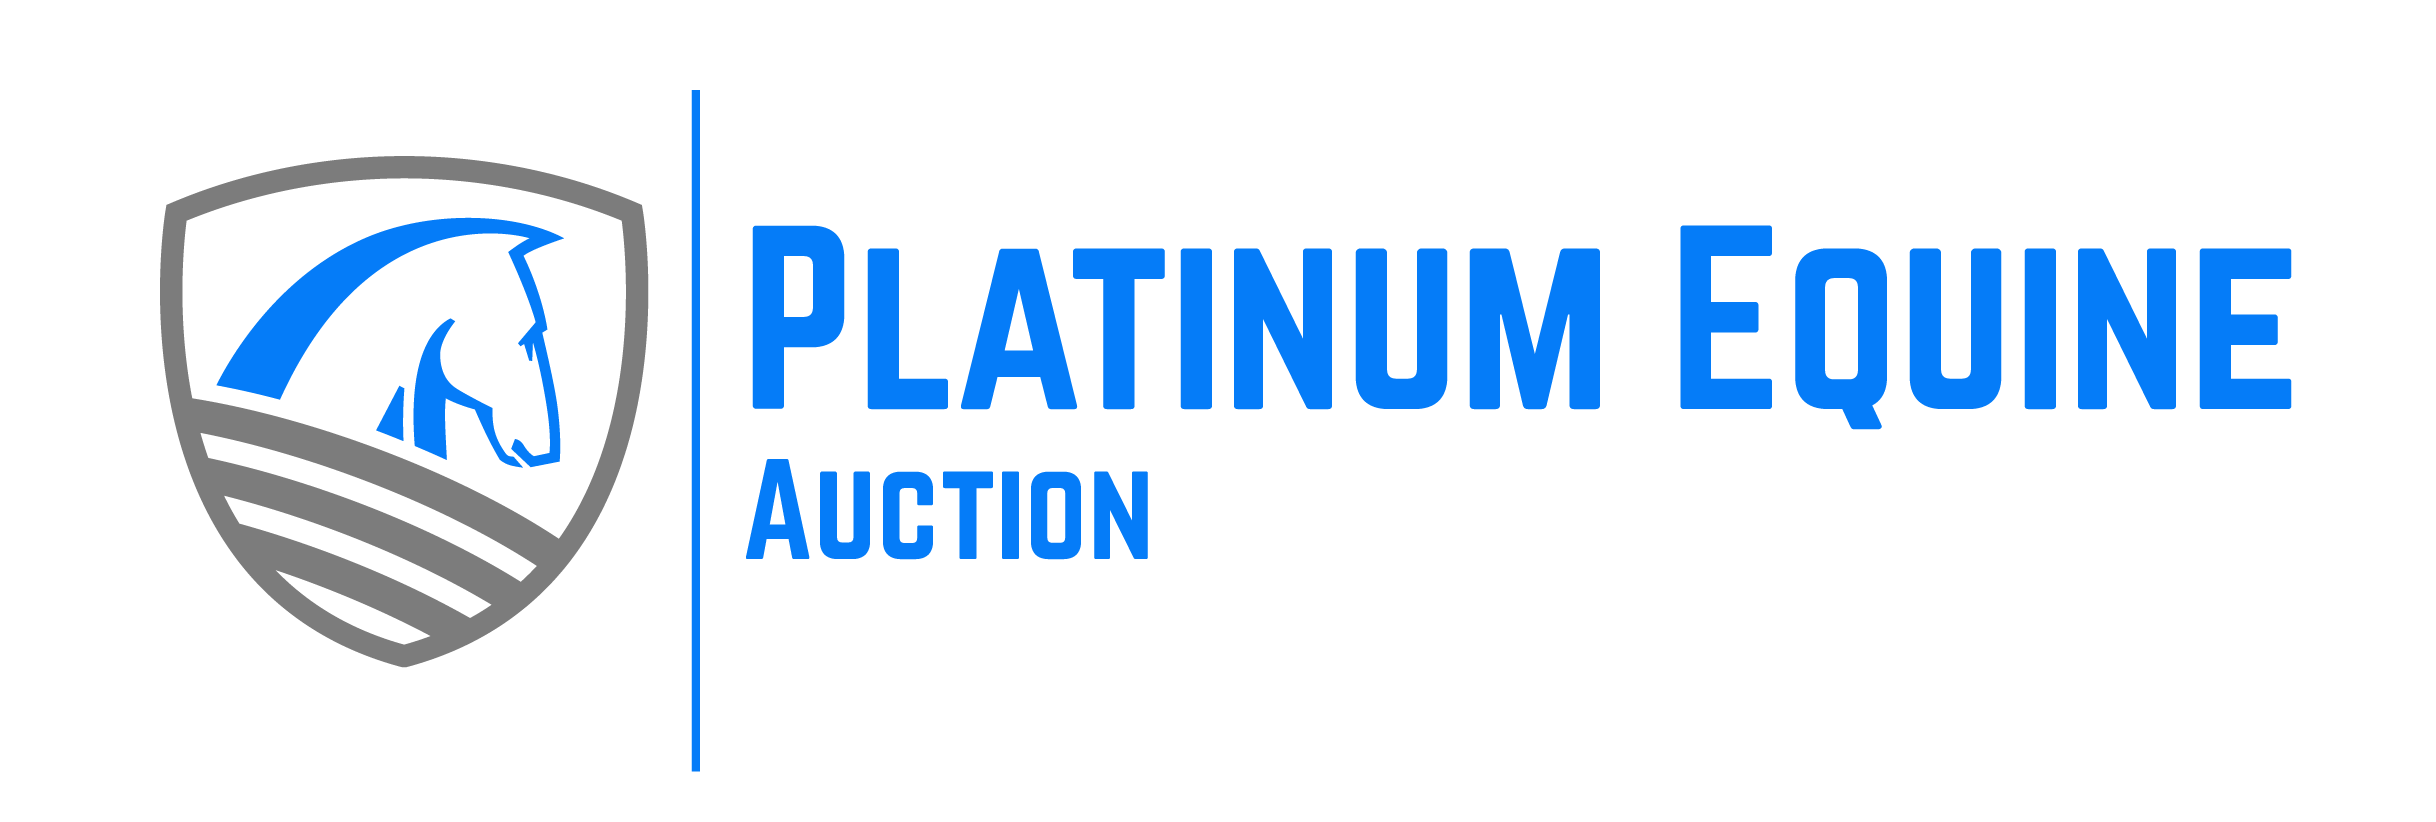 Platinum Equine Auction Logo